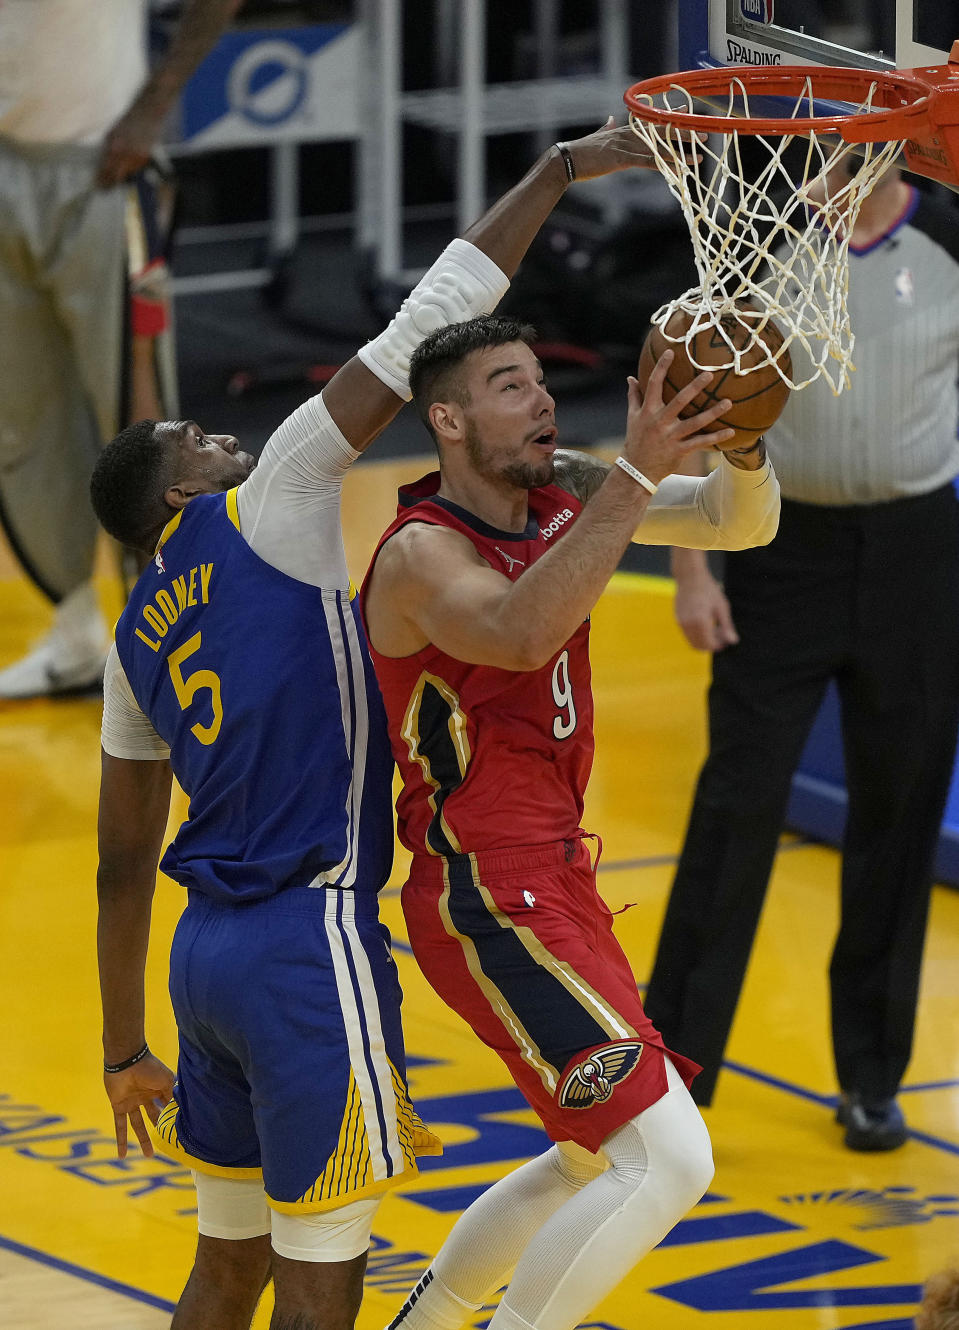 New Orleans Pelicans center Willy Hernangomez (9) drives to the basket against Golden State Warriors center Kevon Looney (5) during the first half of an NBA basketball game on Friday, May 14, 2021, in San Francisco. (AP Photo/Tony Avelar)